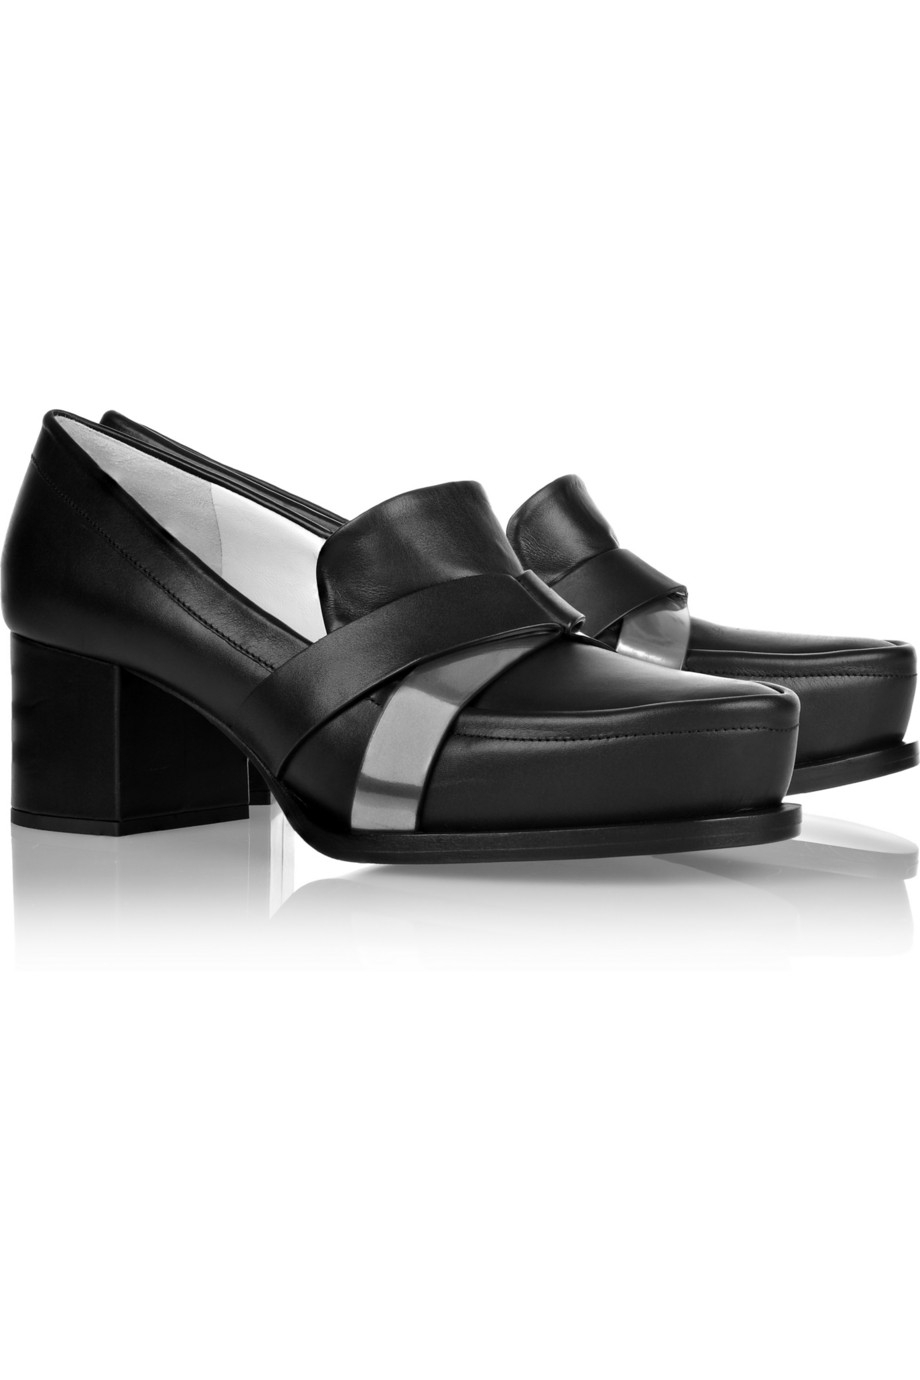 Jil Sander Leather Pumps Cheap Price Free Shipping Clearance Online Amazon Discount Sale Online Outlet Visit 6pUQiCKx